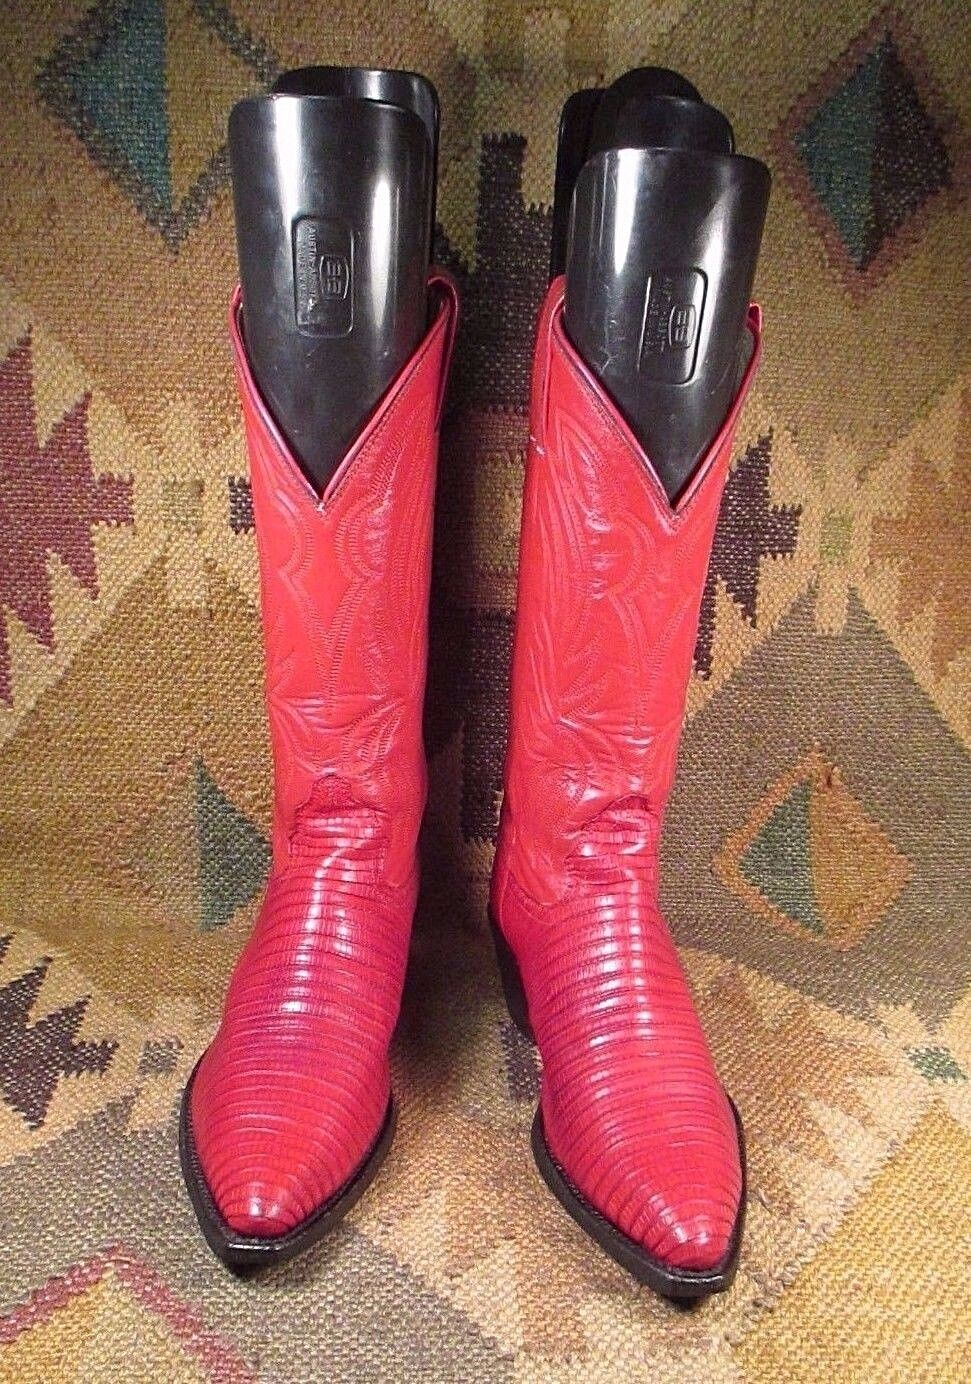 BILLY MARTIN'S  Justin Red Lizard Cowboy Boots, 5 1 2 B made in USA